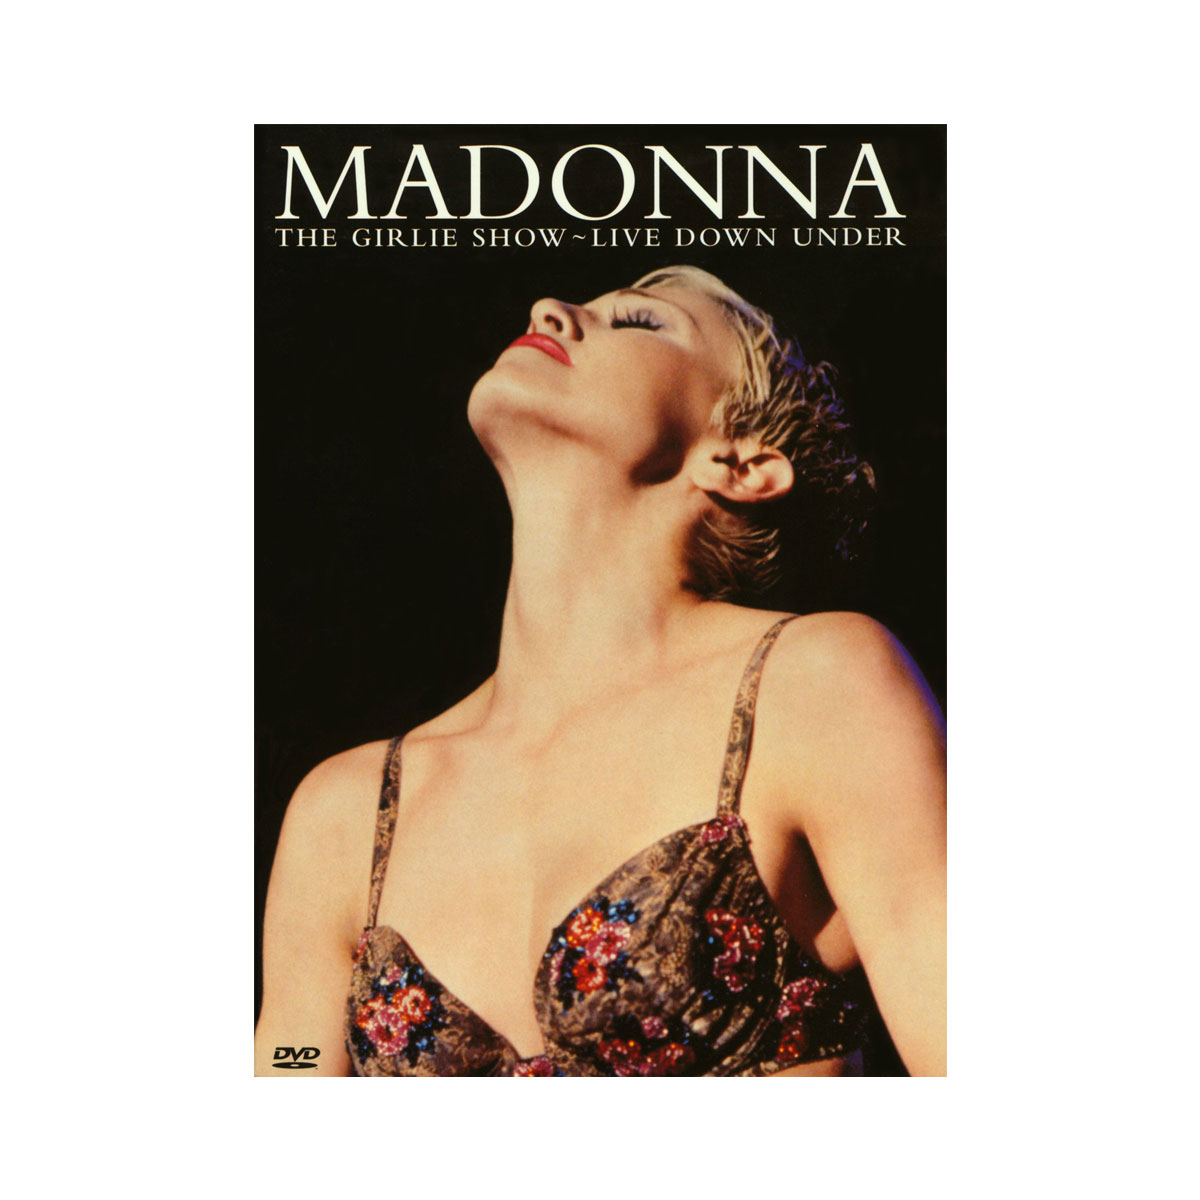 DVD Madonna The Girlie Show Live Down Under